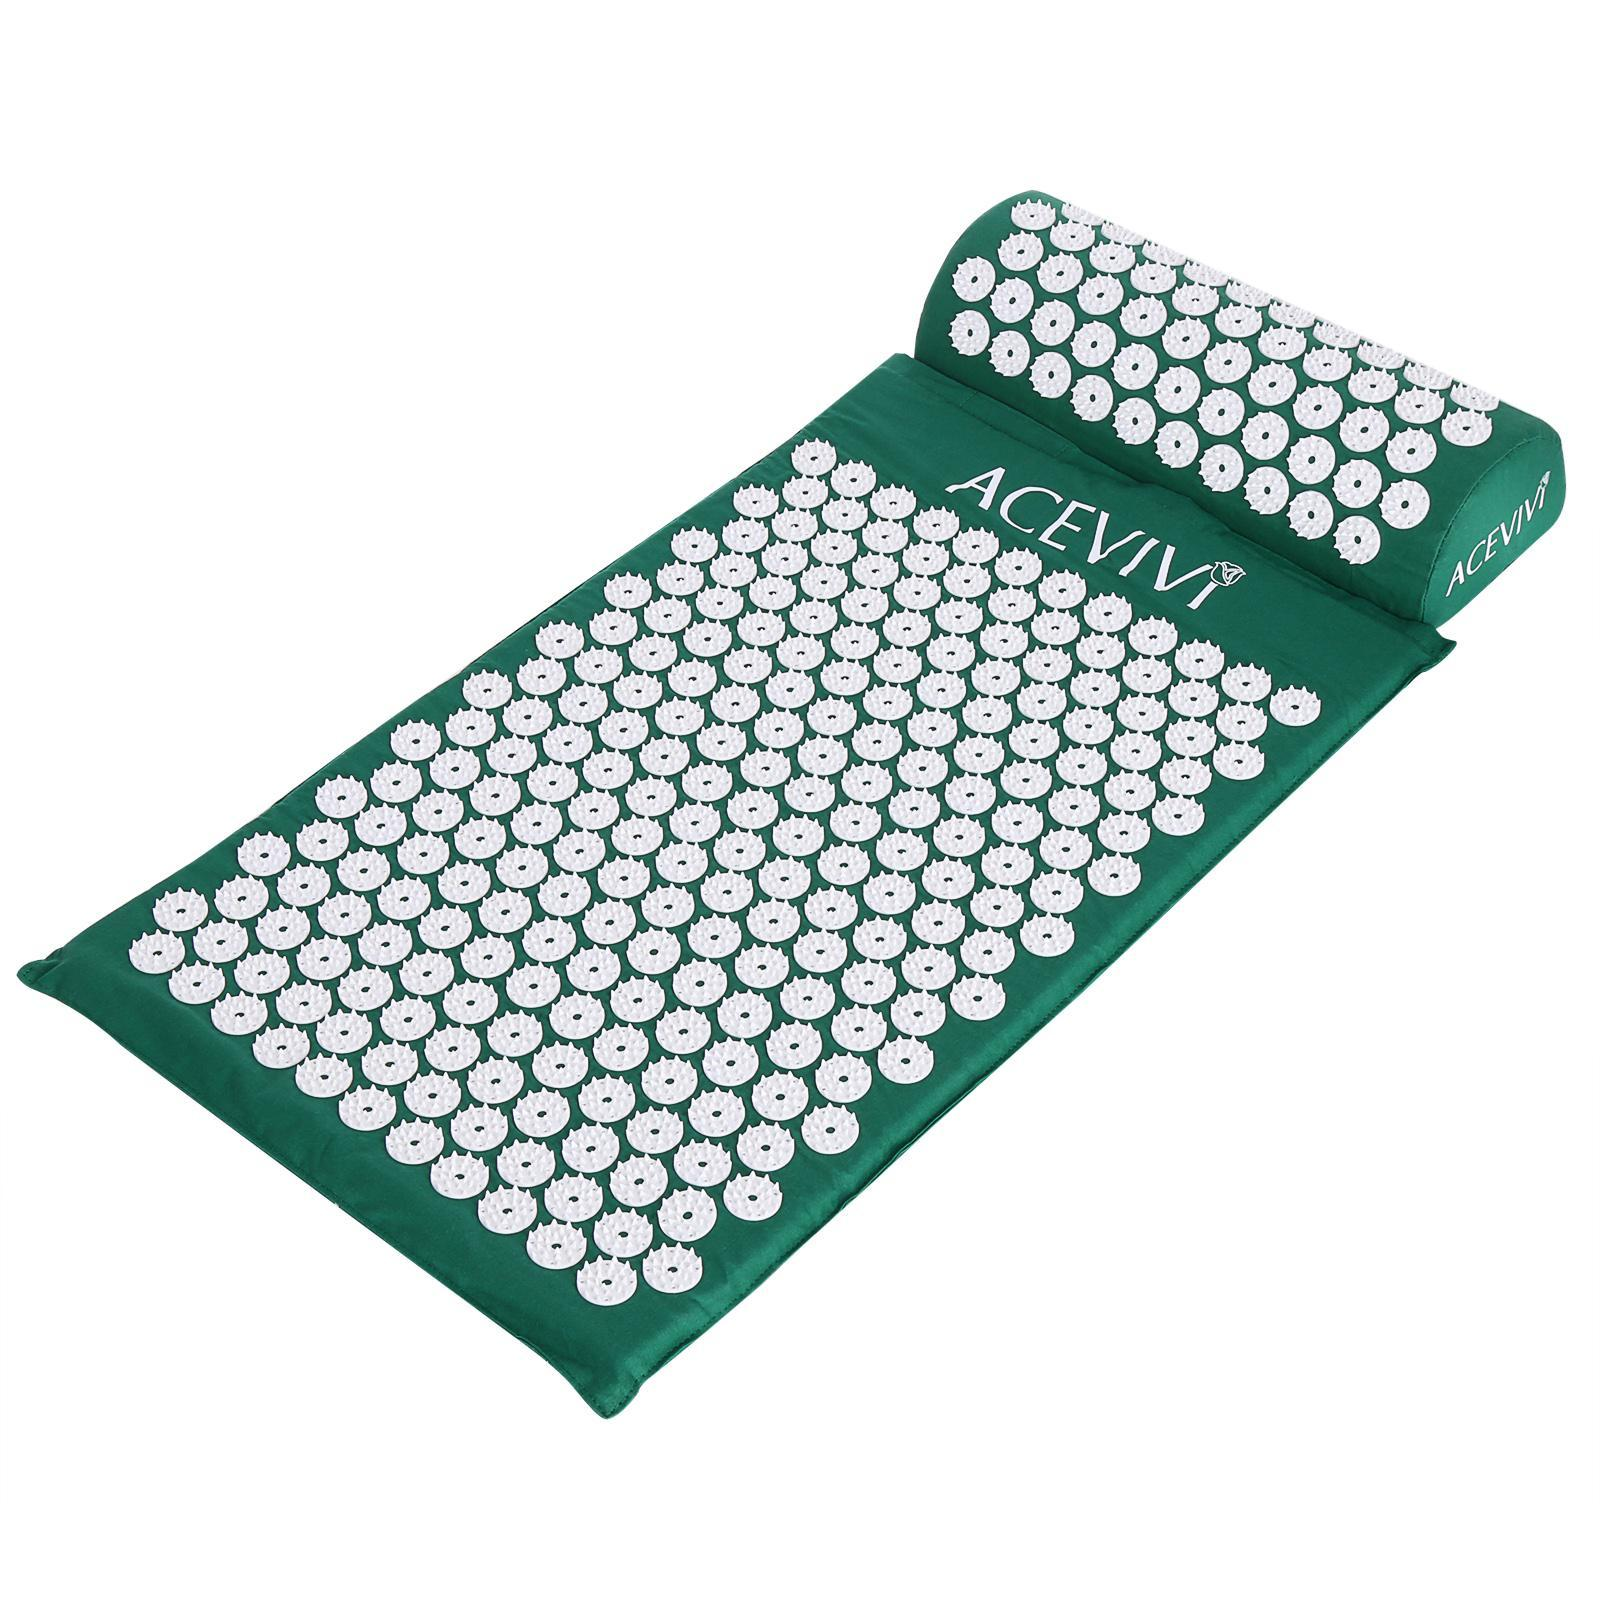 Cyber Acevivi Acupressure Mat Relieve Stress Pain